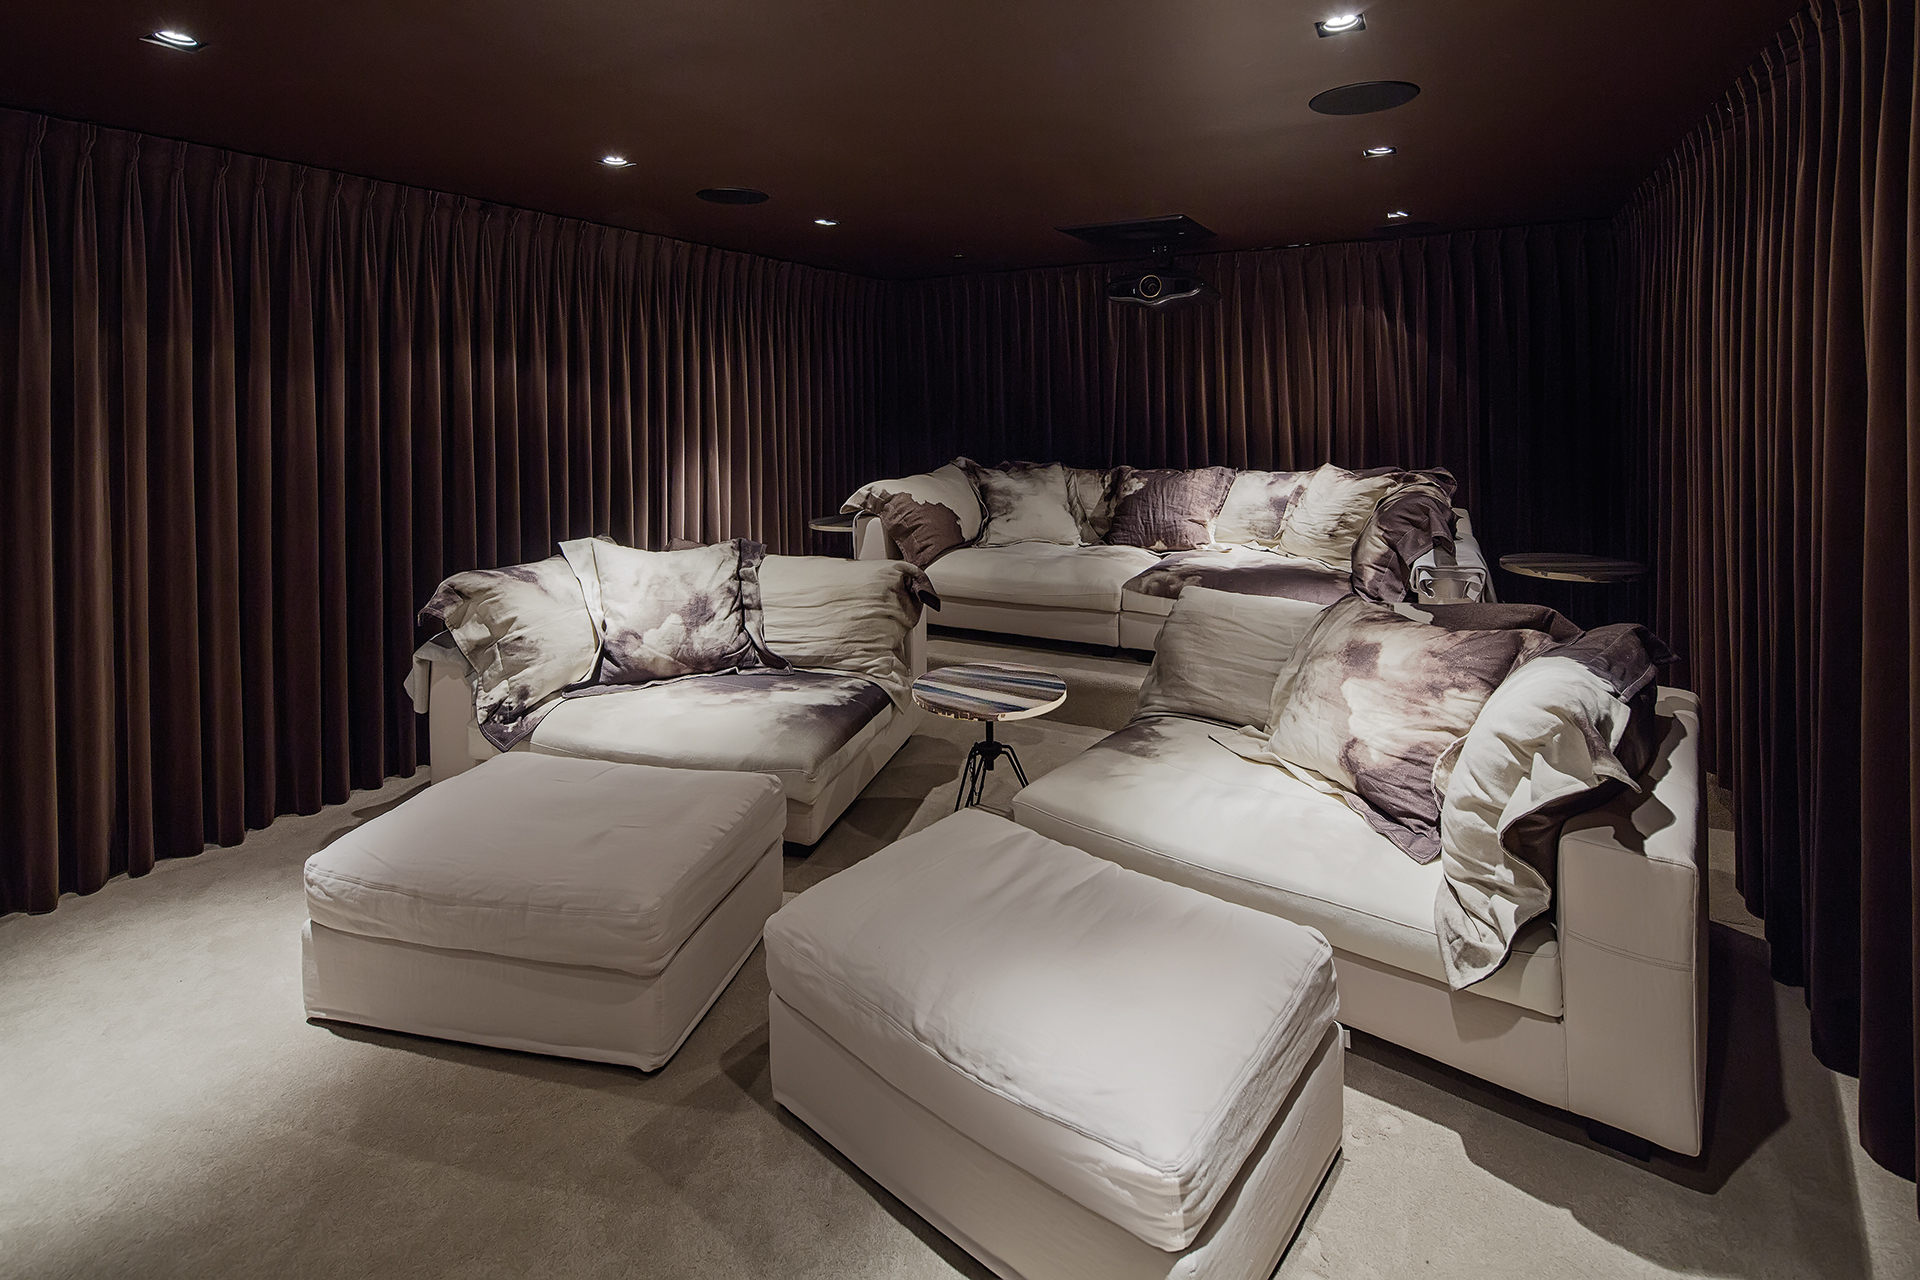 comfotable home cinema with multiple sofas and blankets